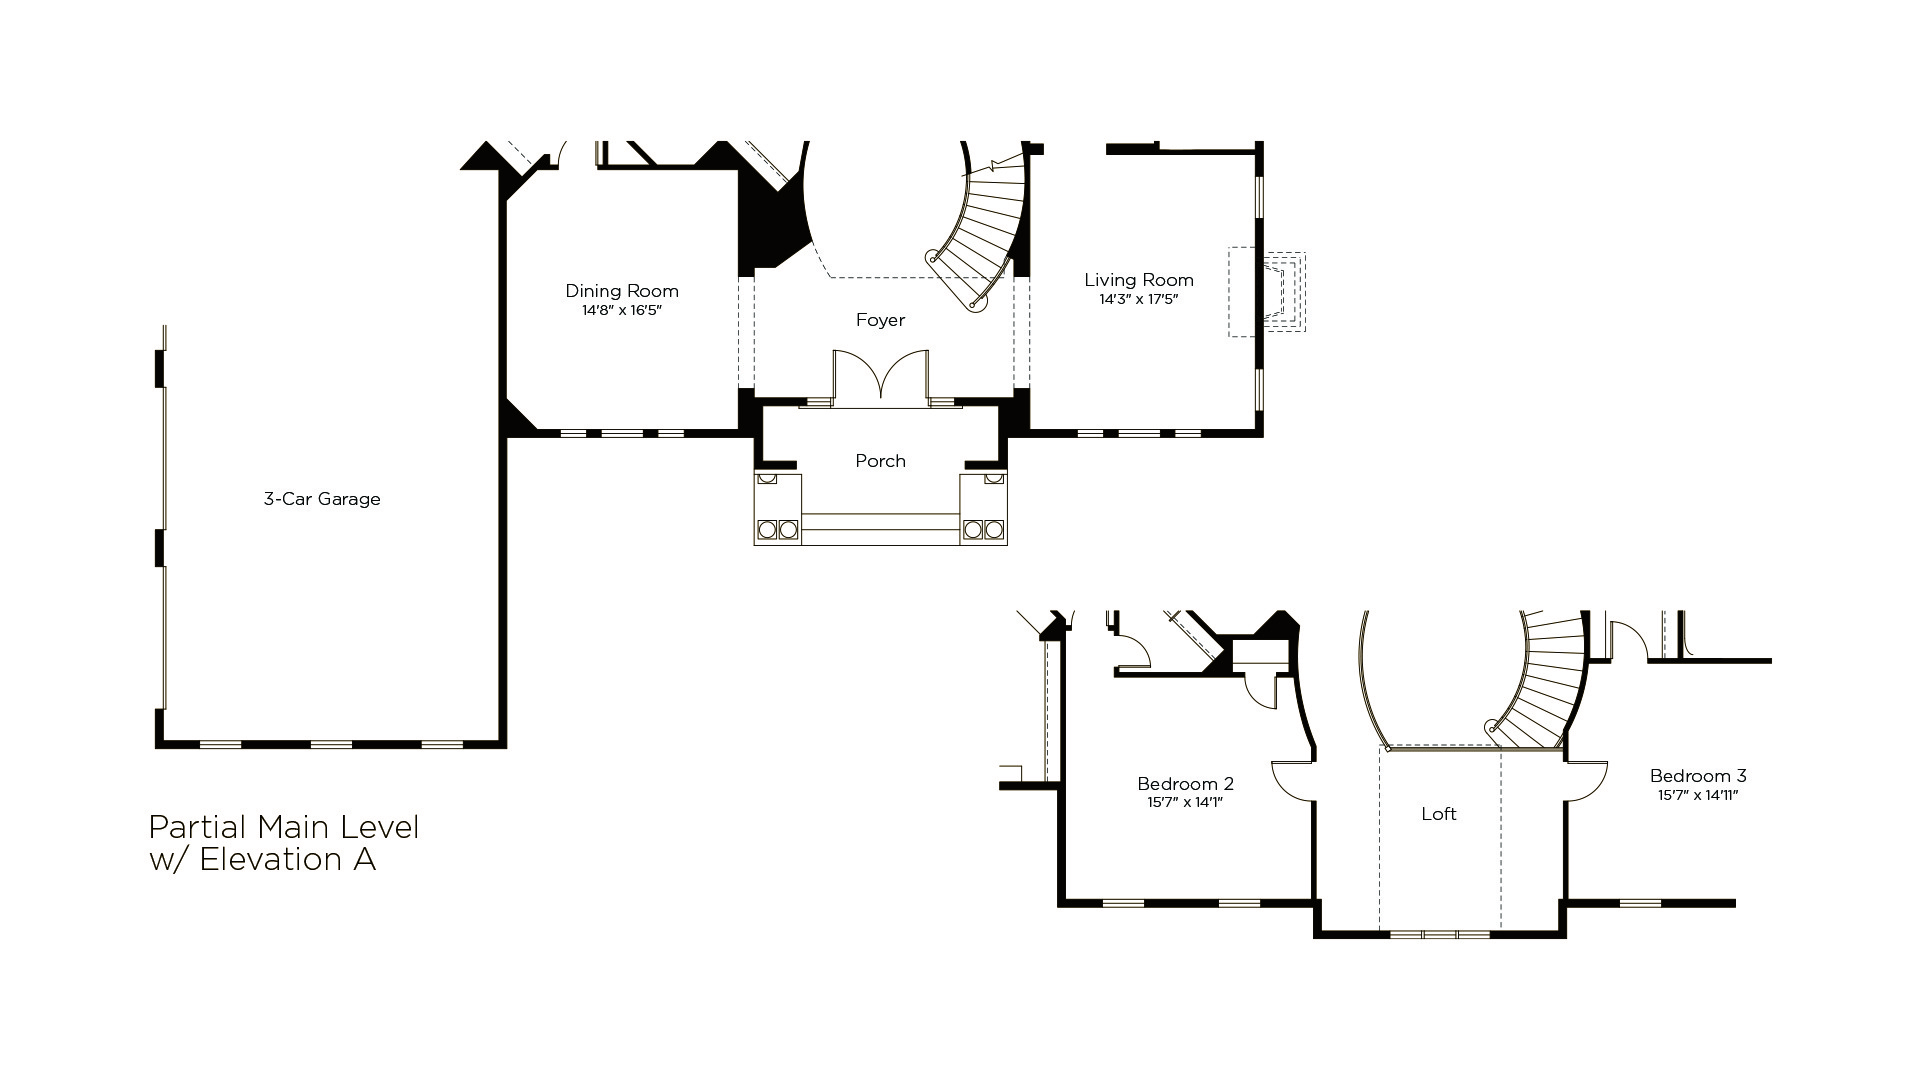 Winthrop - Summerwood Series - Optional Elevation A Floorplan